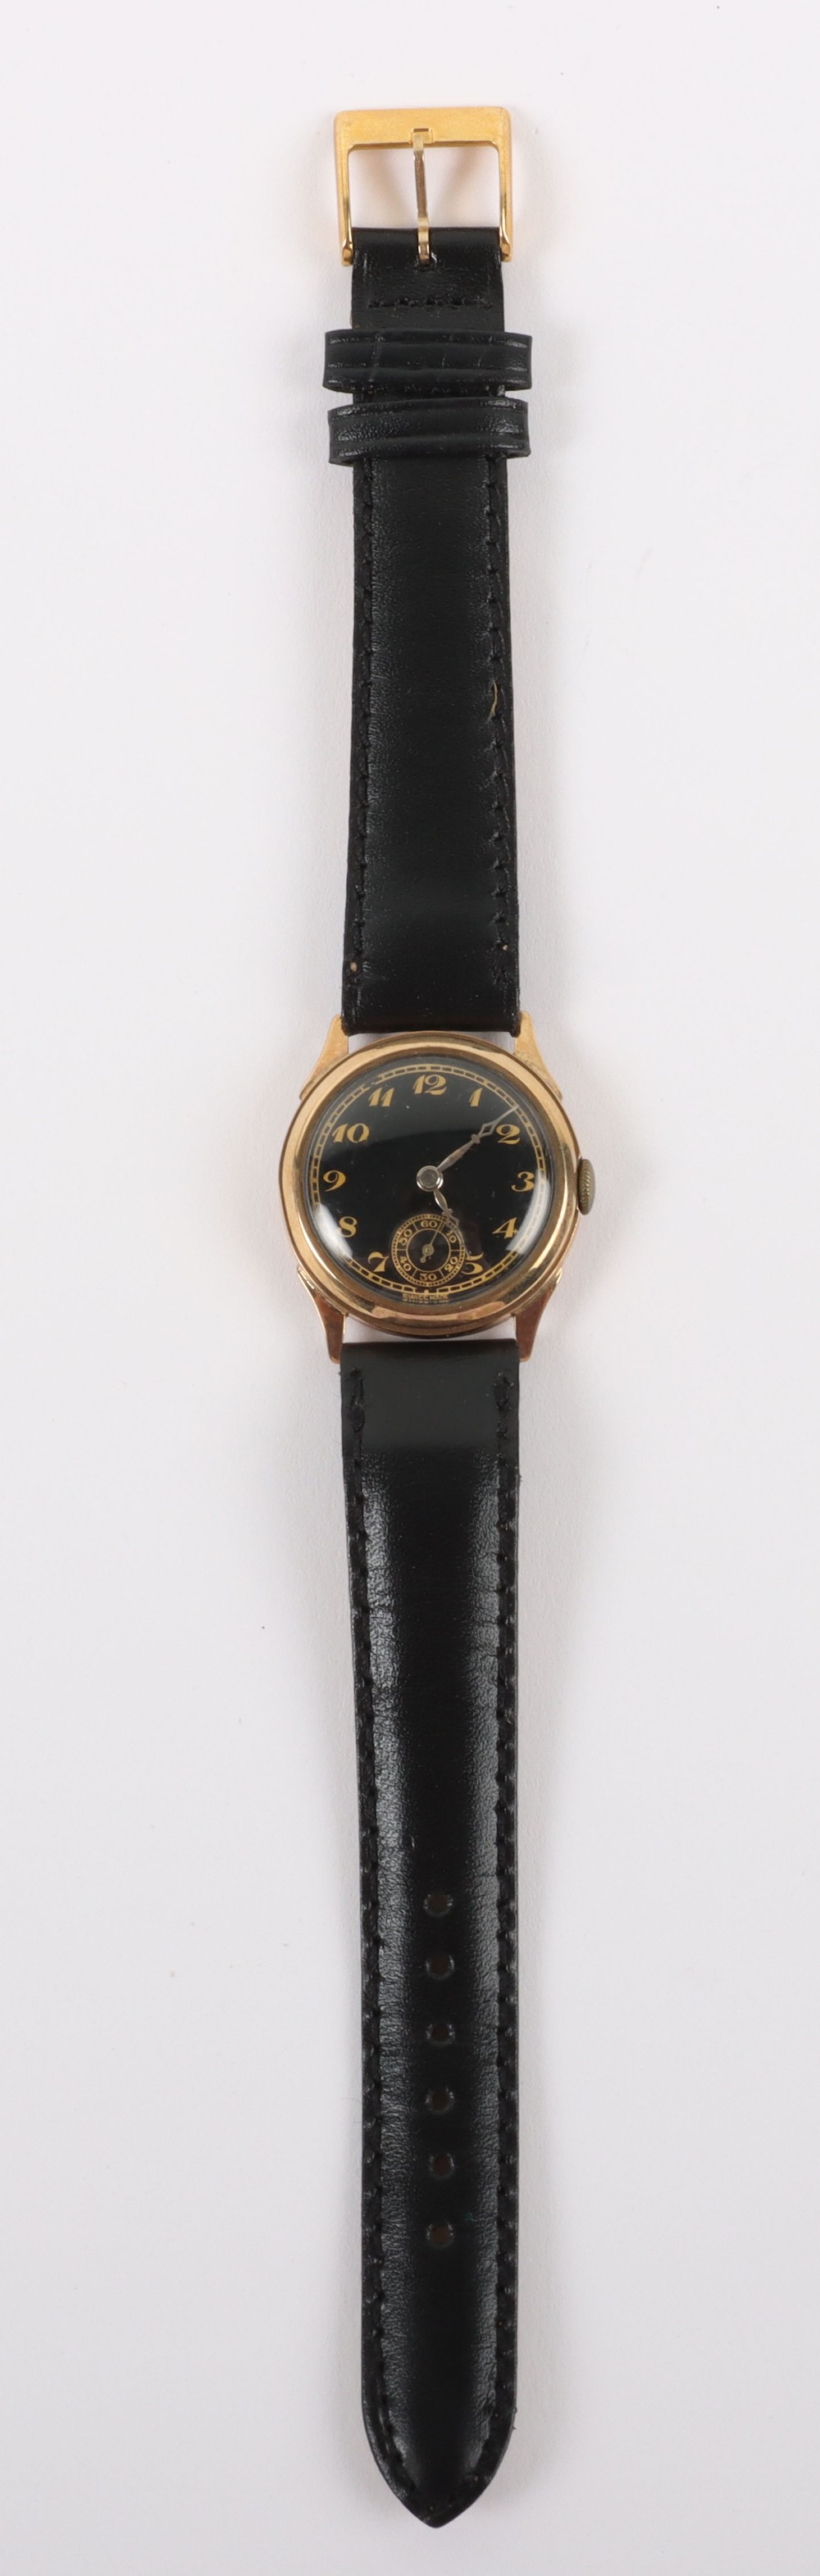 A vintage 9ct gold Swiss made wristwatch, circa 1940 - Image 2 of 7